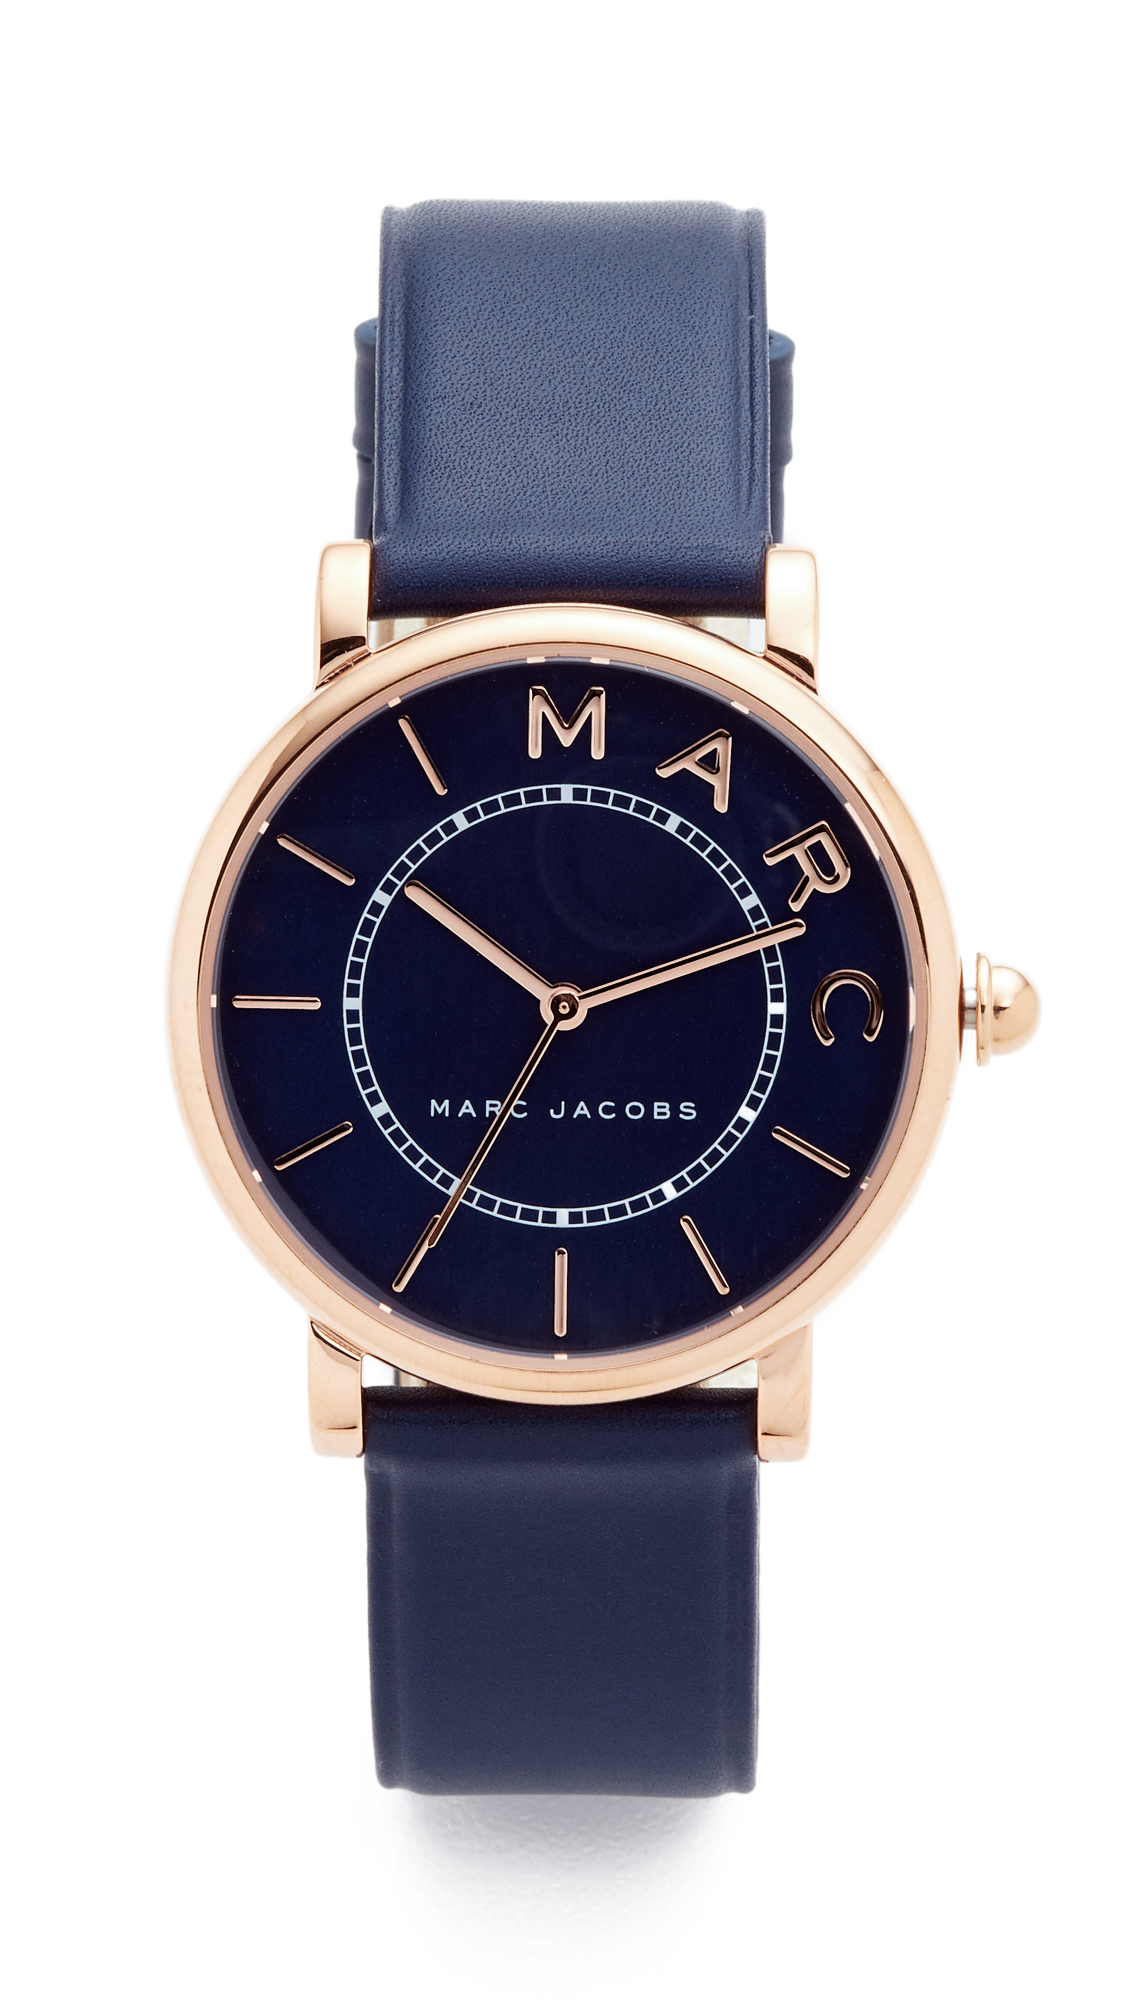 Marc Jacobs Marc Jacobs Classic Watch - Rose Gold/Navy Satin/Navy